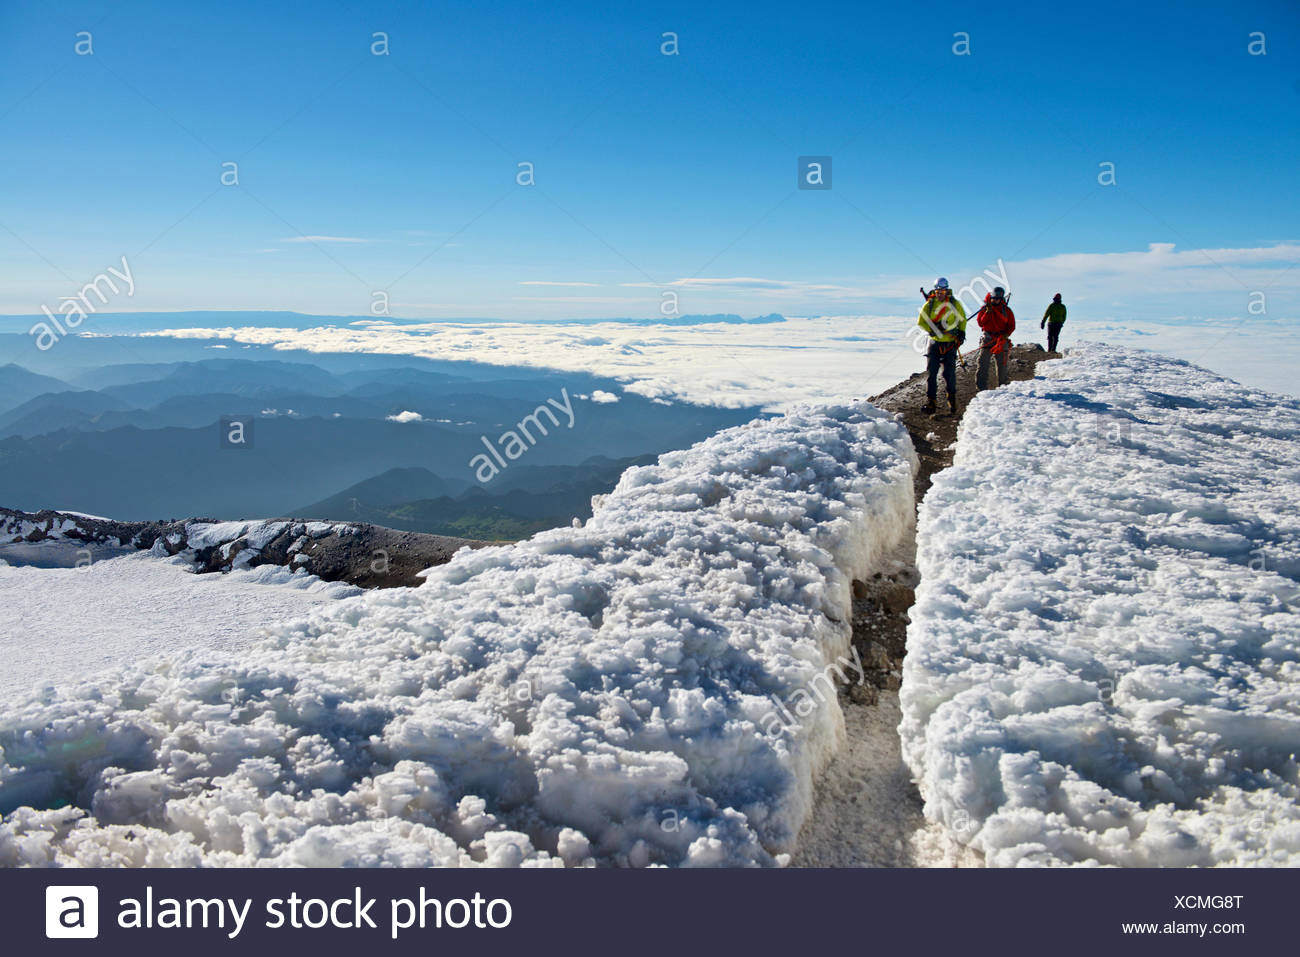 Group of three mountain climbers on Liberty Cap at summit of Mount Rainier,Mount Rainier National Park,Washington State,USA - Stock Image